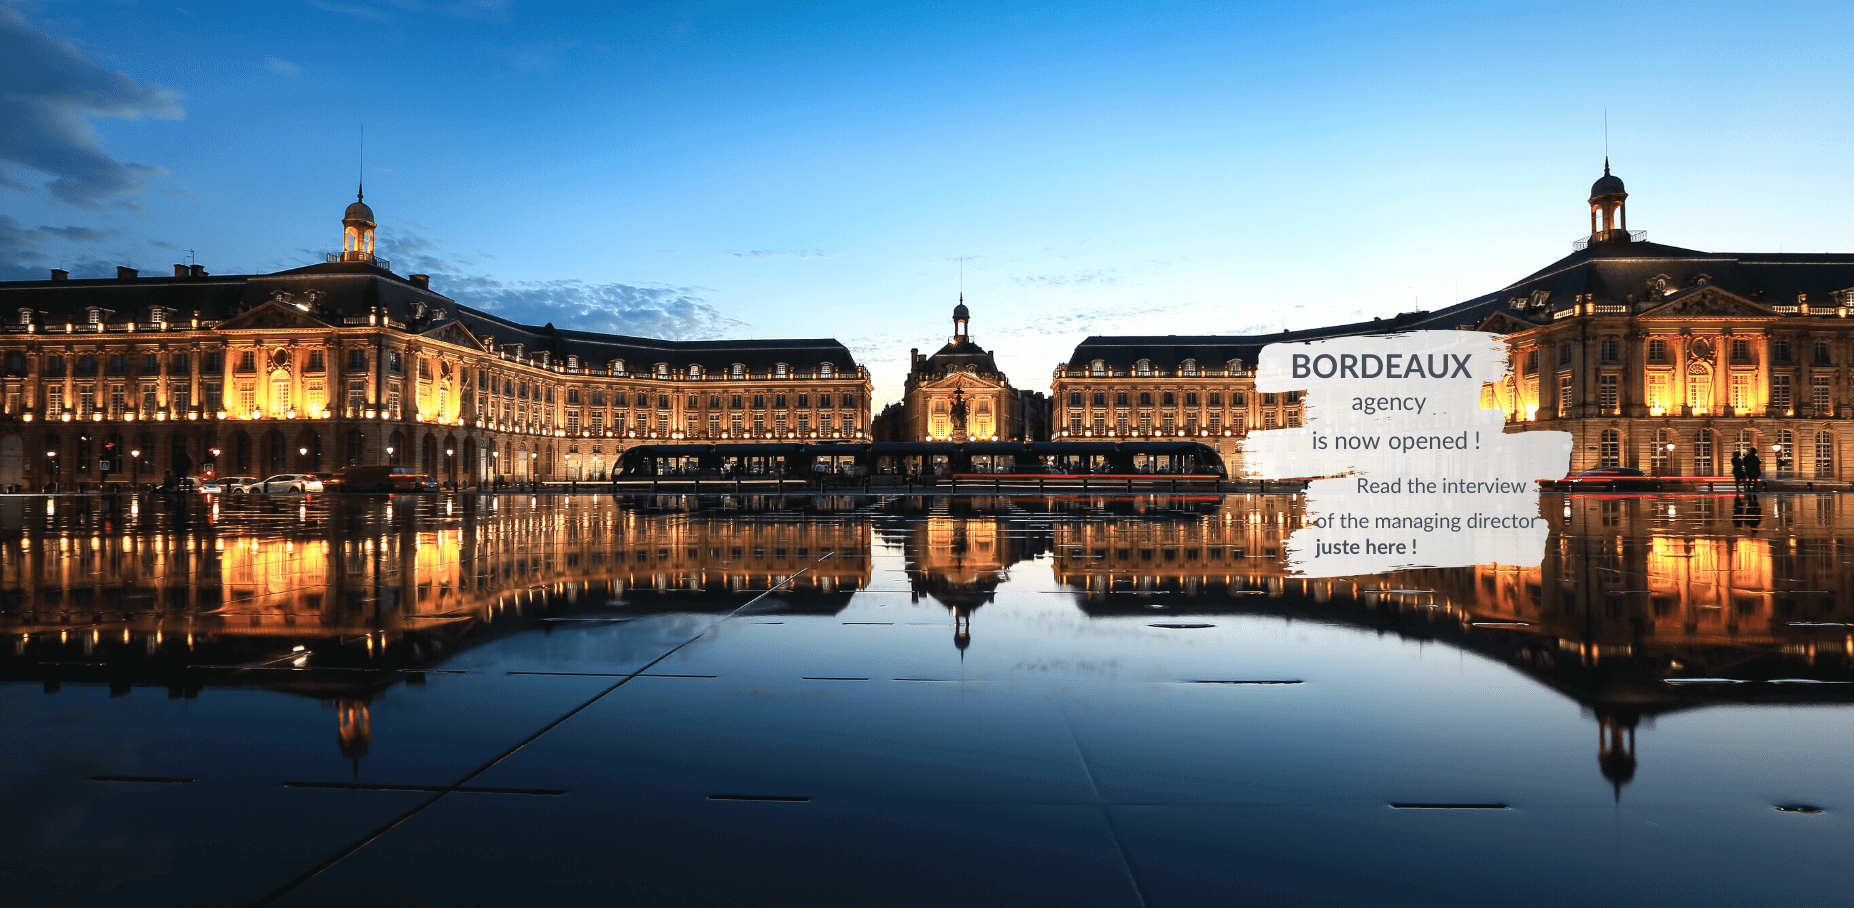 Bordeaux agency is now opened, read the interview of the managing director just here